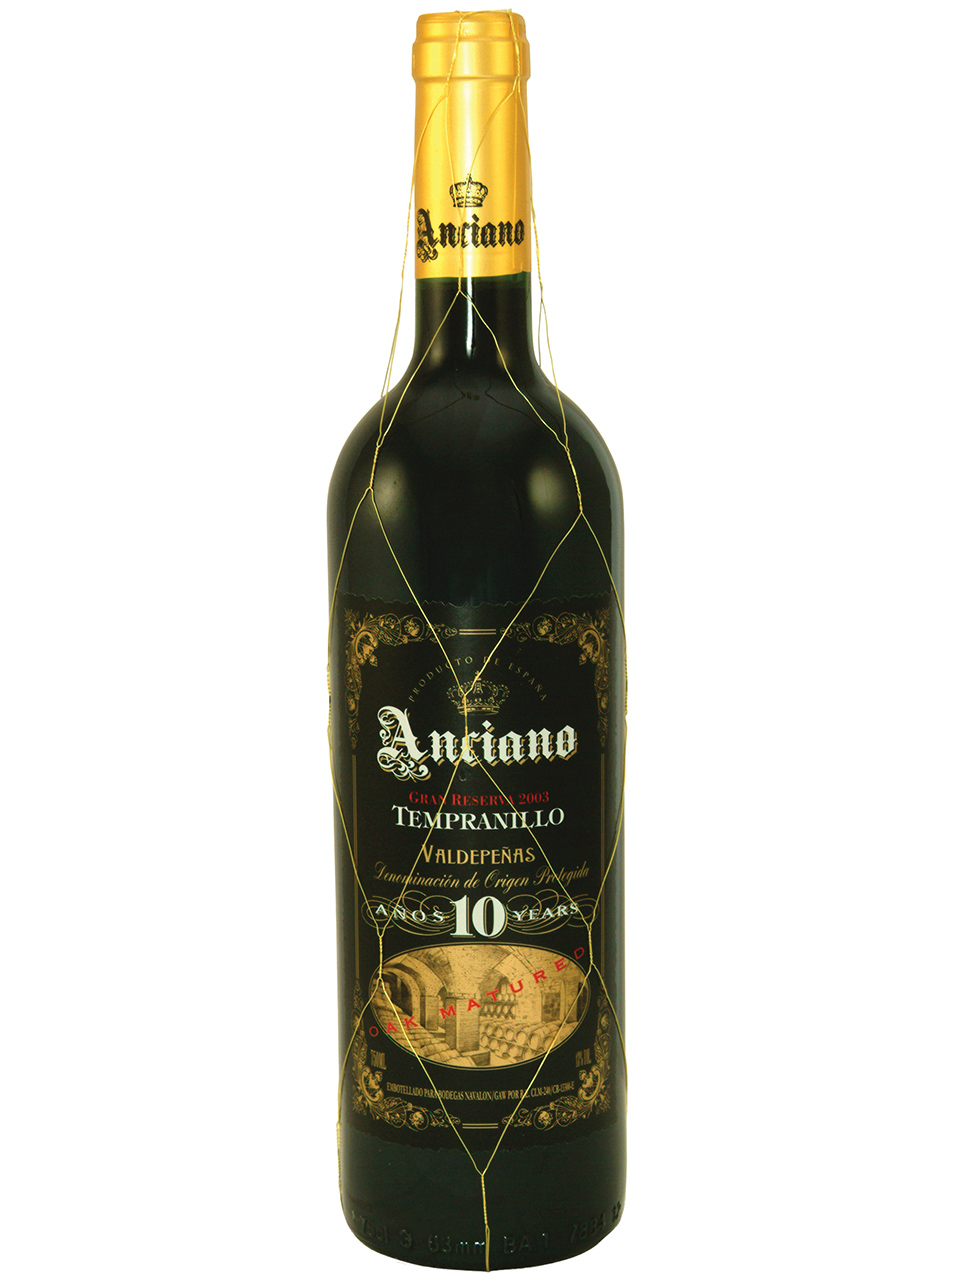 Anciano Gran Reserva Tempranillo Aged 10 Years